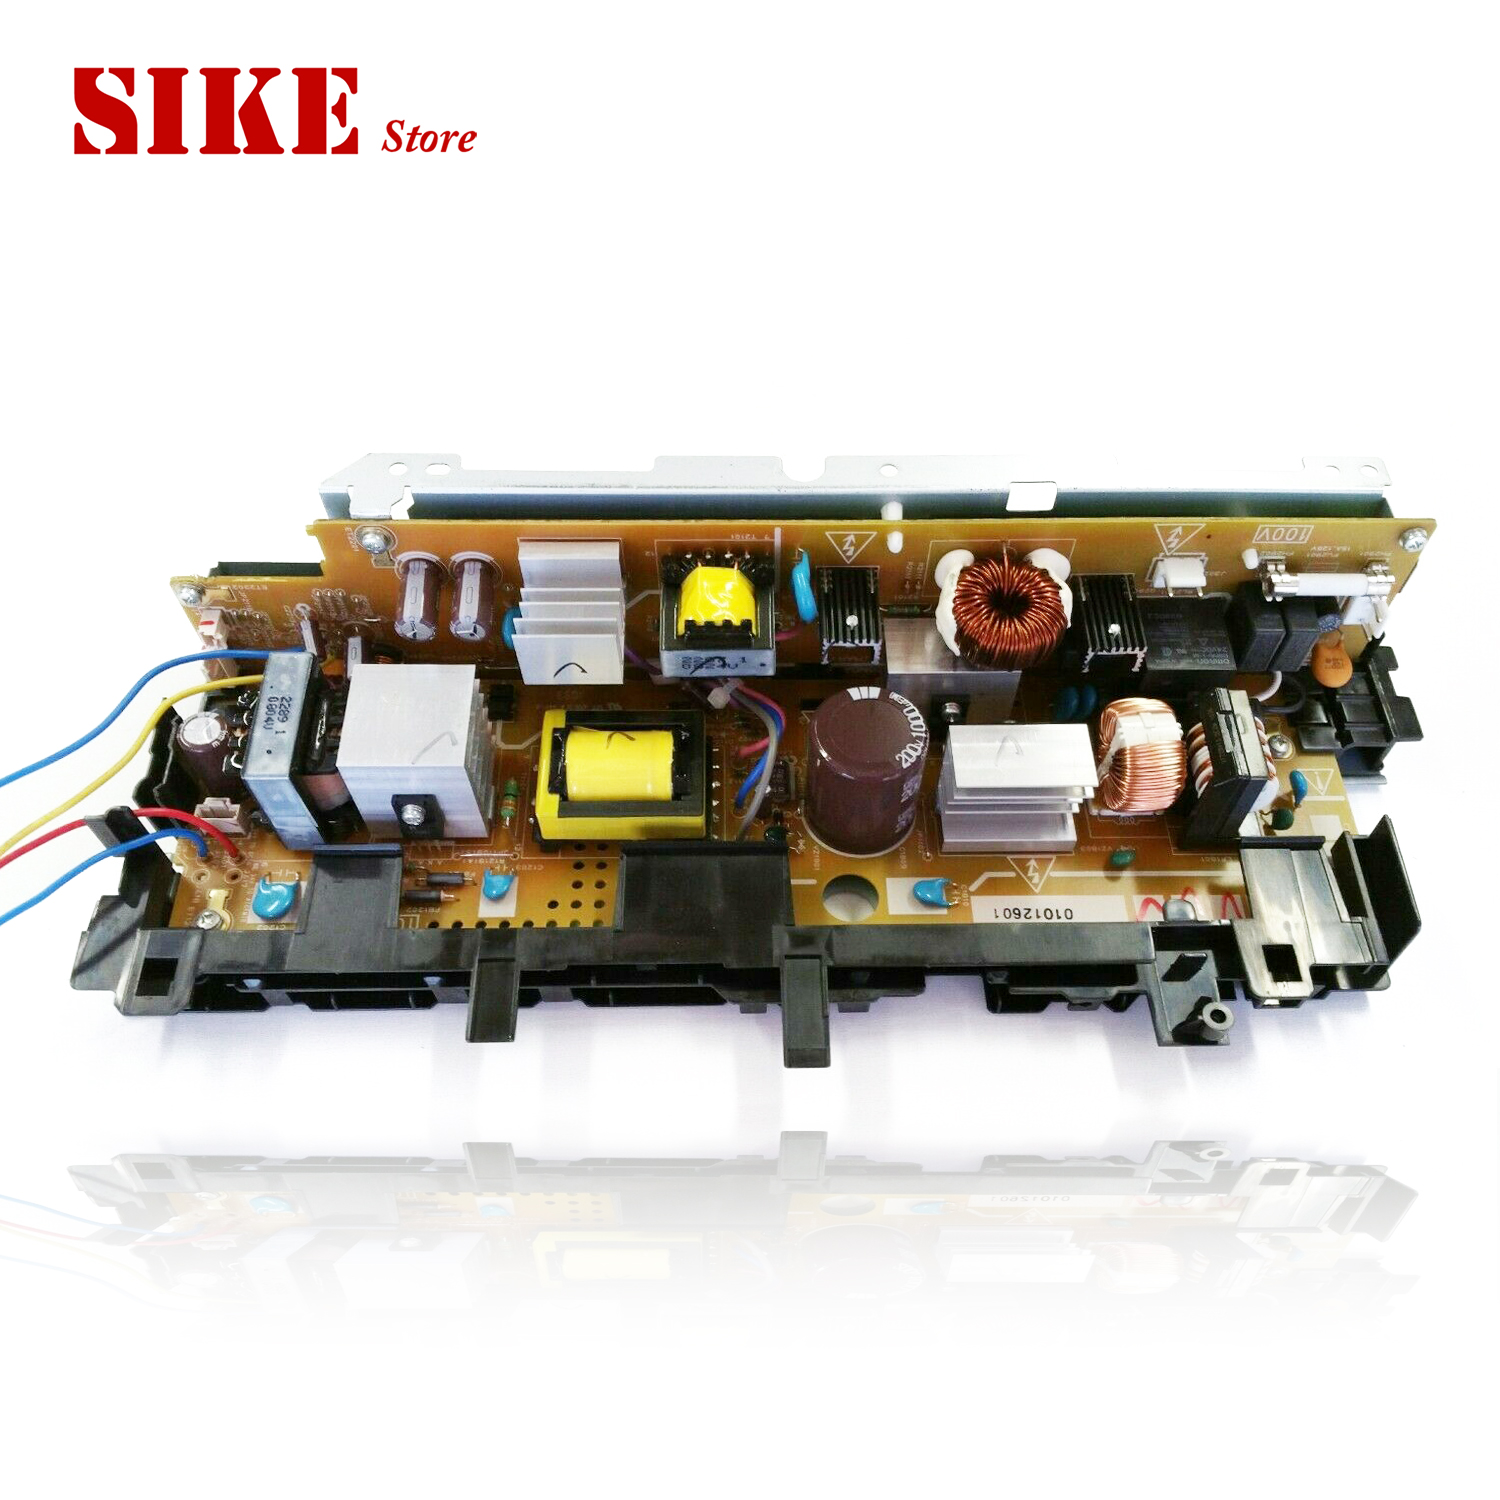 RM1-5407 RM1-5408 Engine Control Power Board For HP CP2025 CP2025dn CP2025n CP2025x 2025 Voltage Power Supply Board